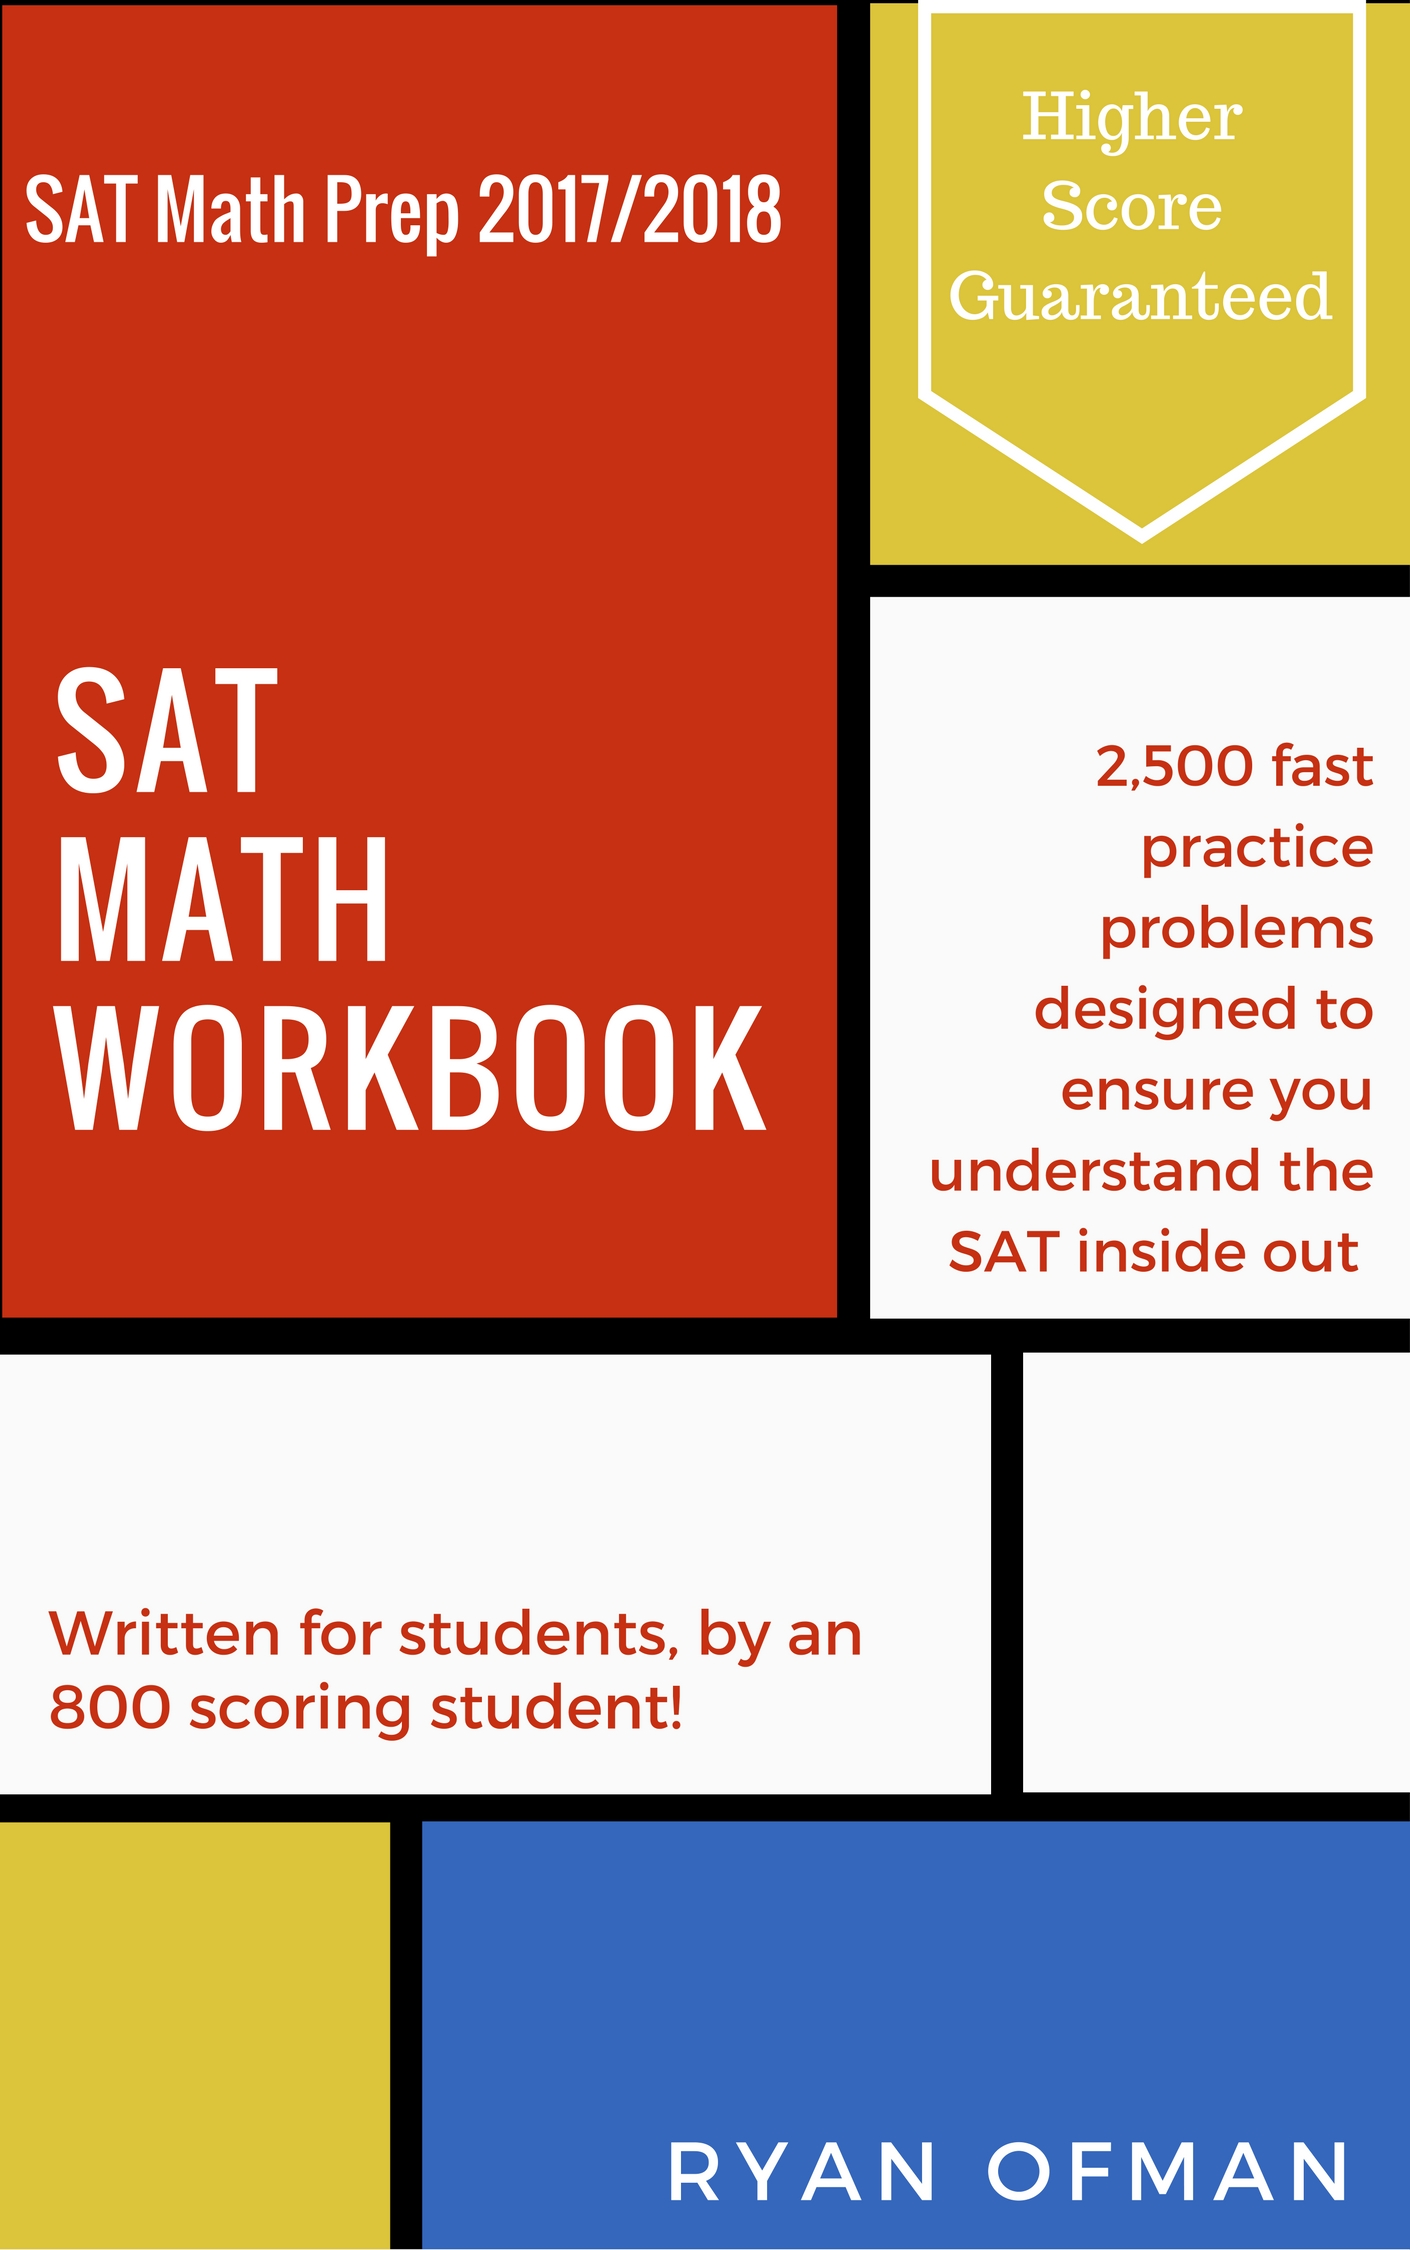 SAT Math Workbook – Ryan vs. Math